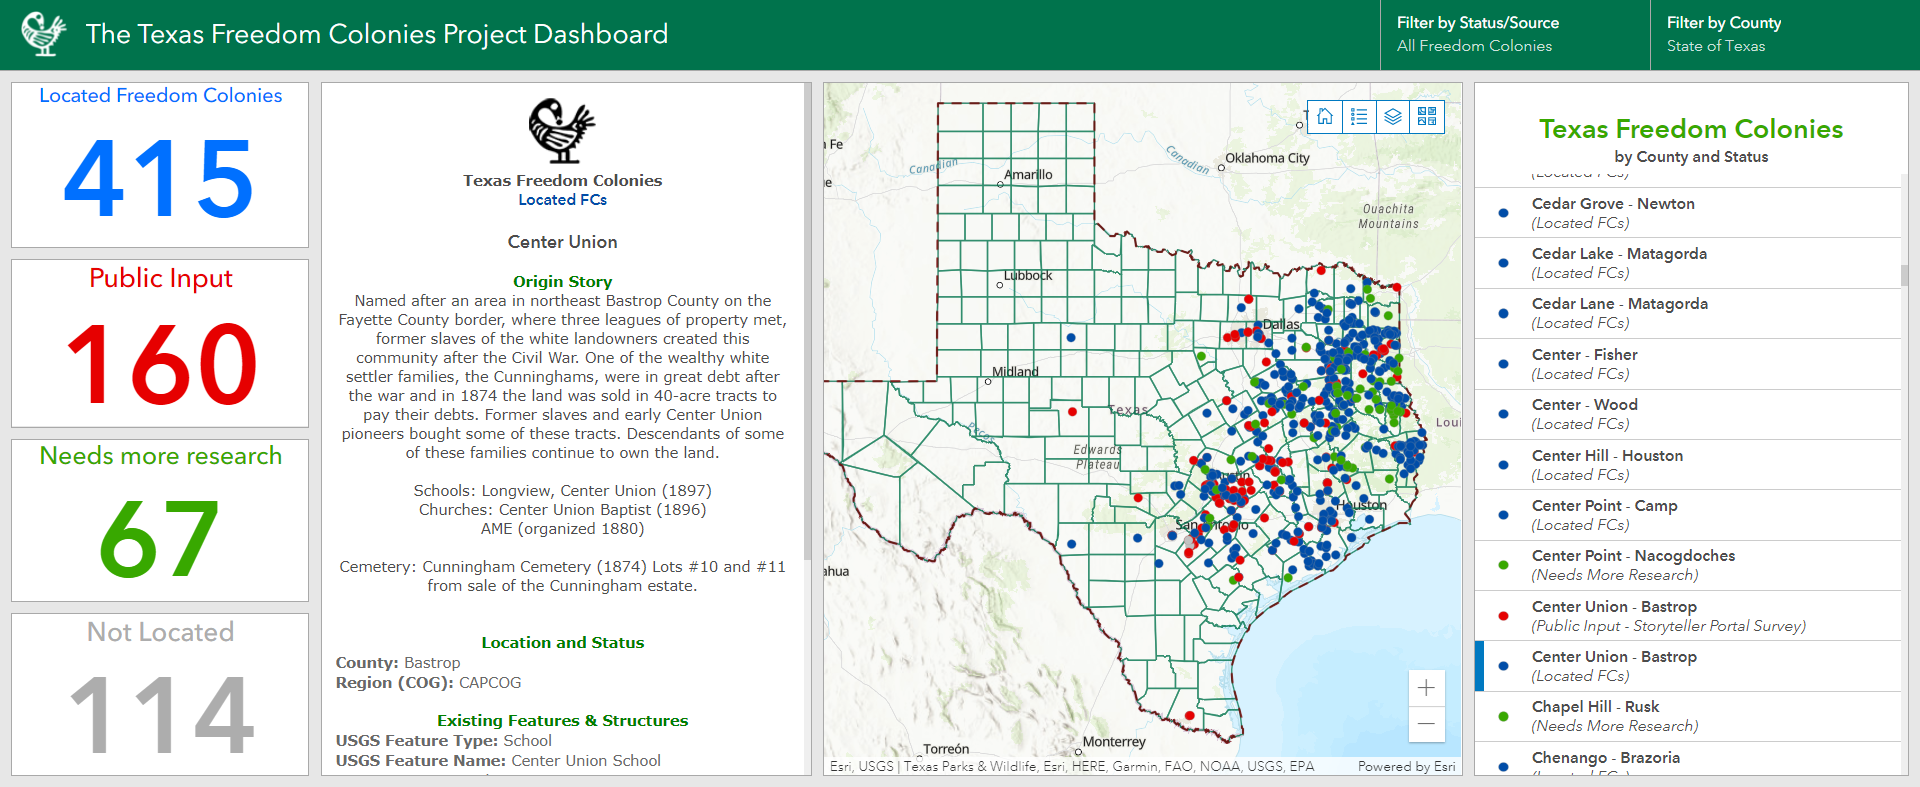 Screenshot of the TxFCP Atlas Dashboard showing the latest numbers of freedom colonies located, needing more research, not located, and the number of public input entries